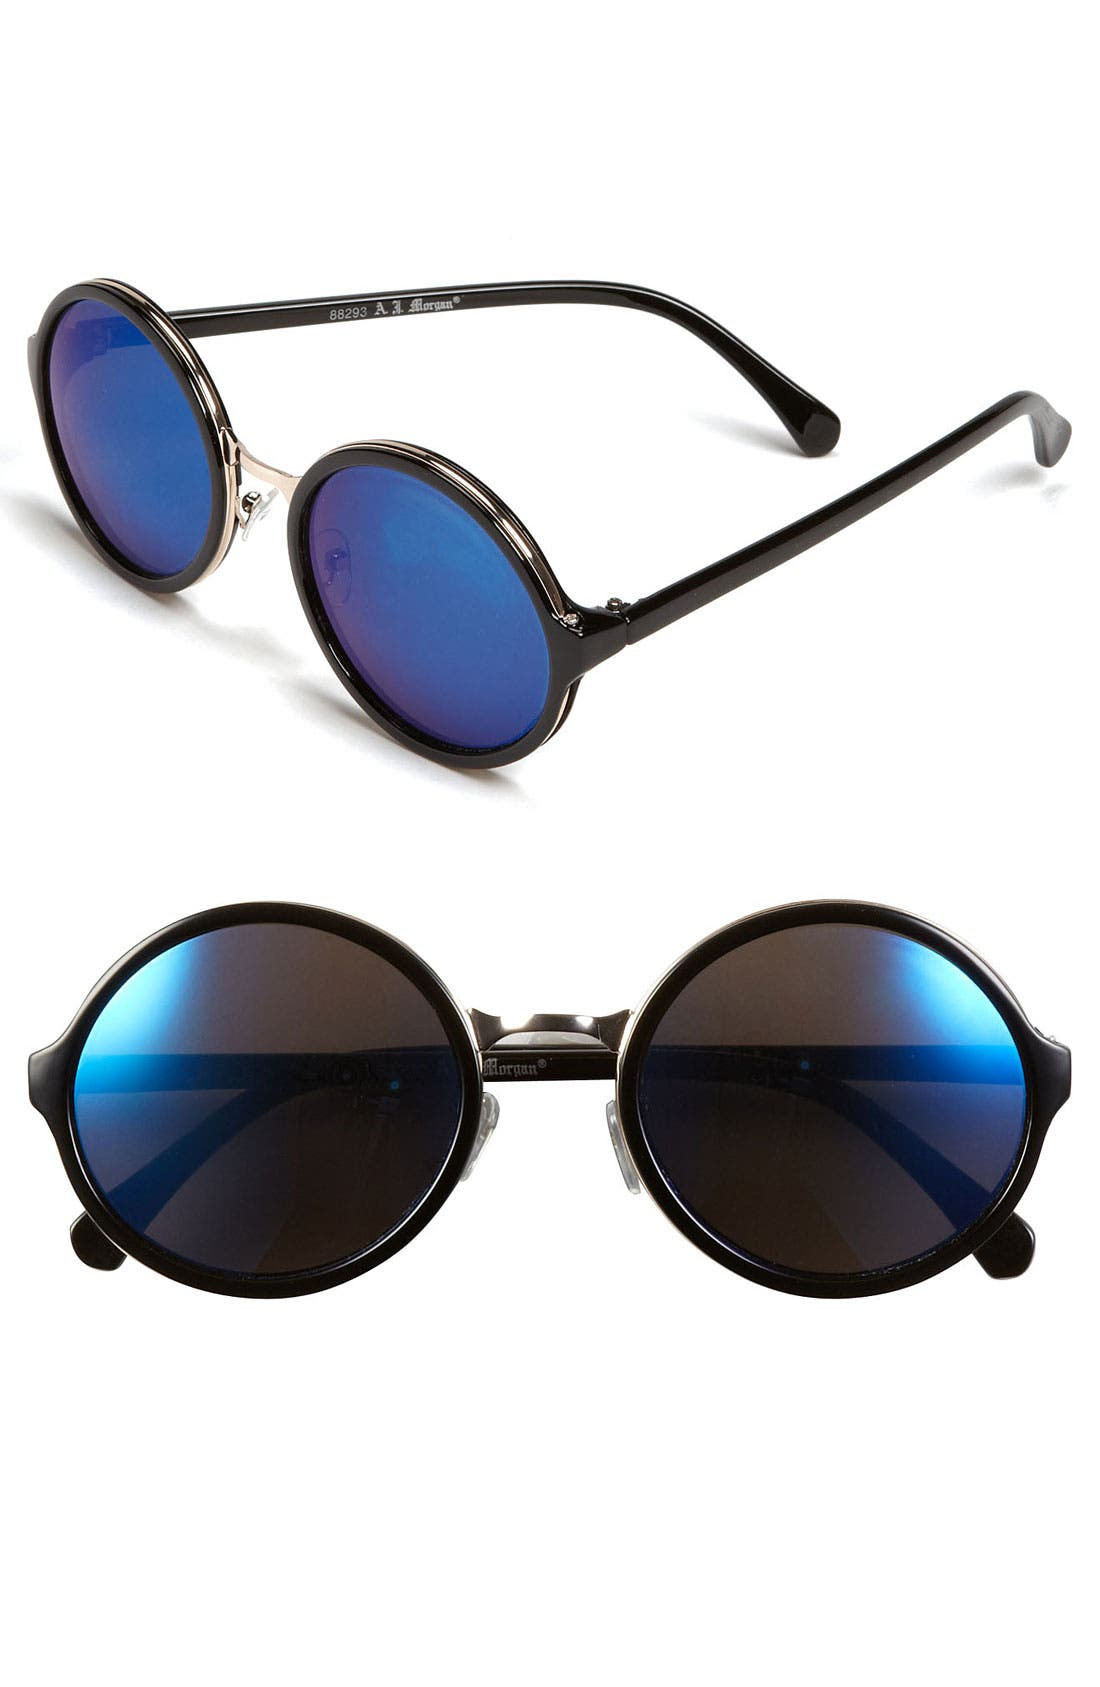 Main Image - A.J. Morgan 52mm Retro Round Sunglasses